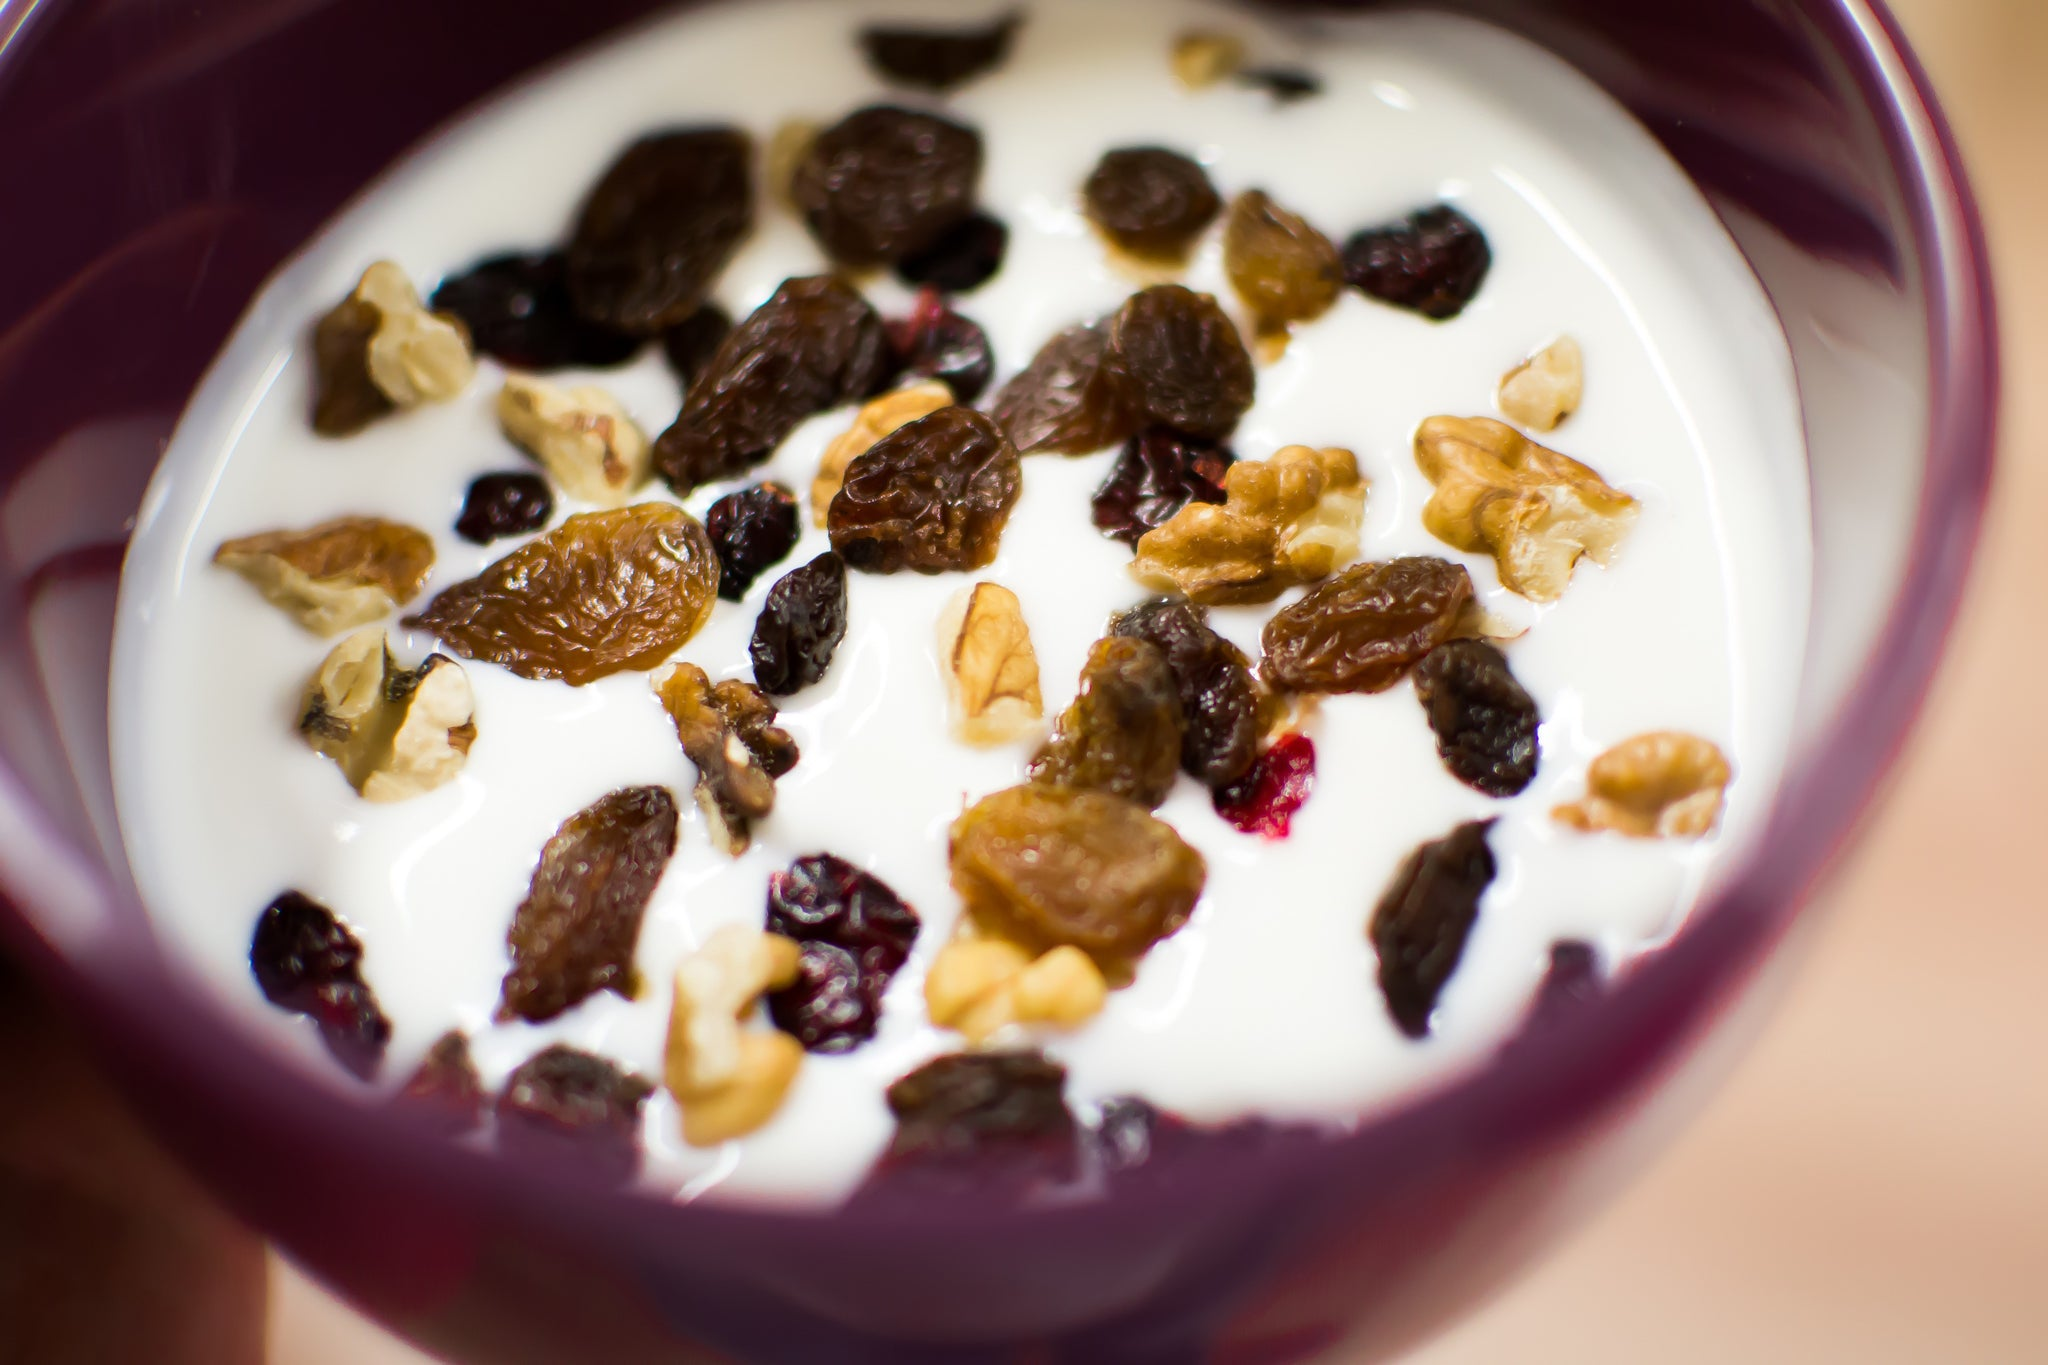 yogurt with raisins and nuts in a bowl